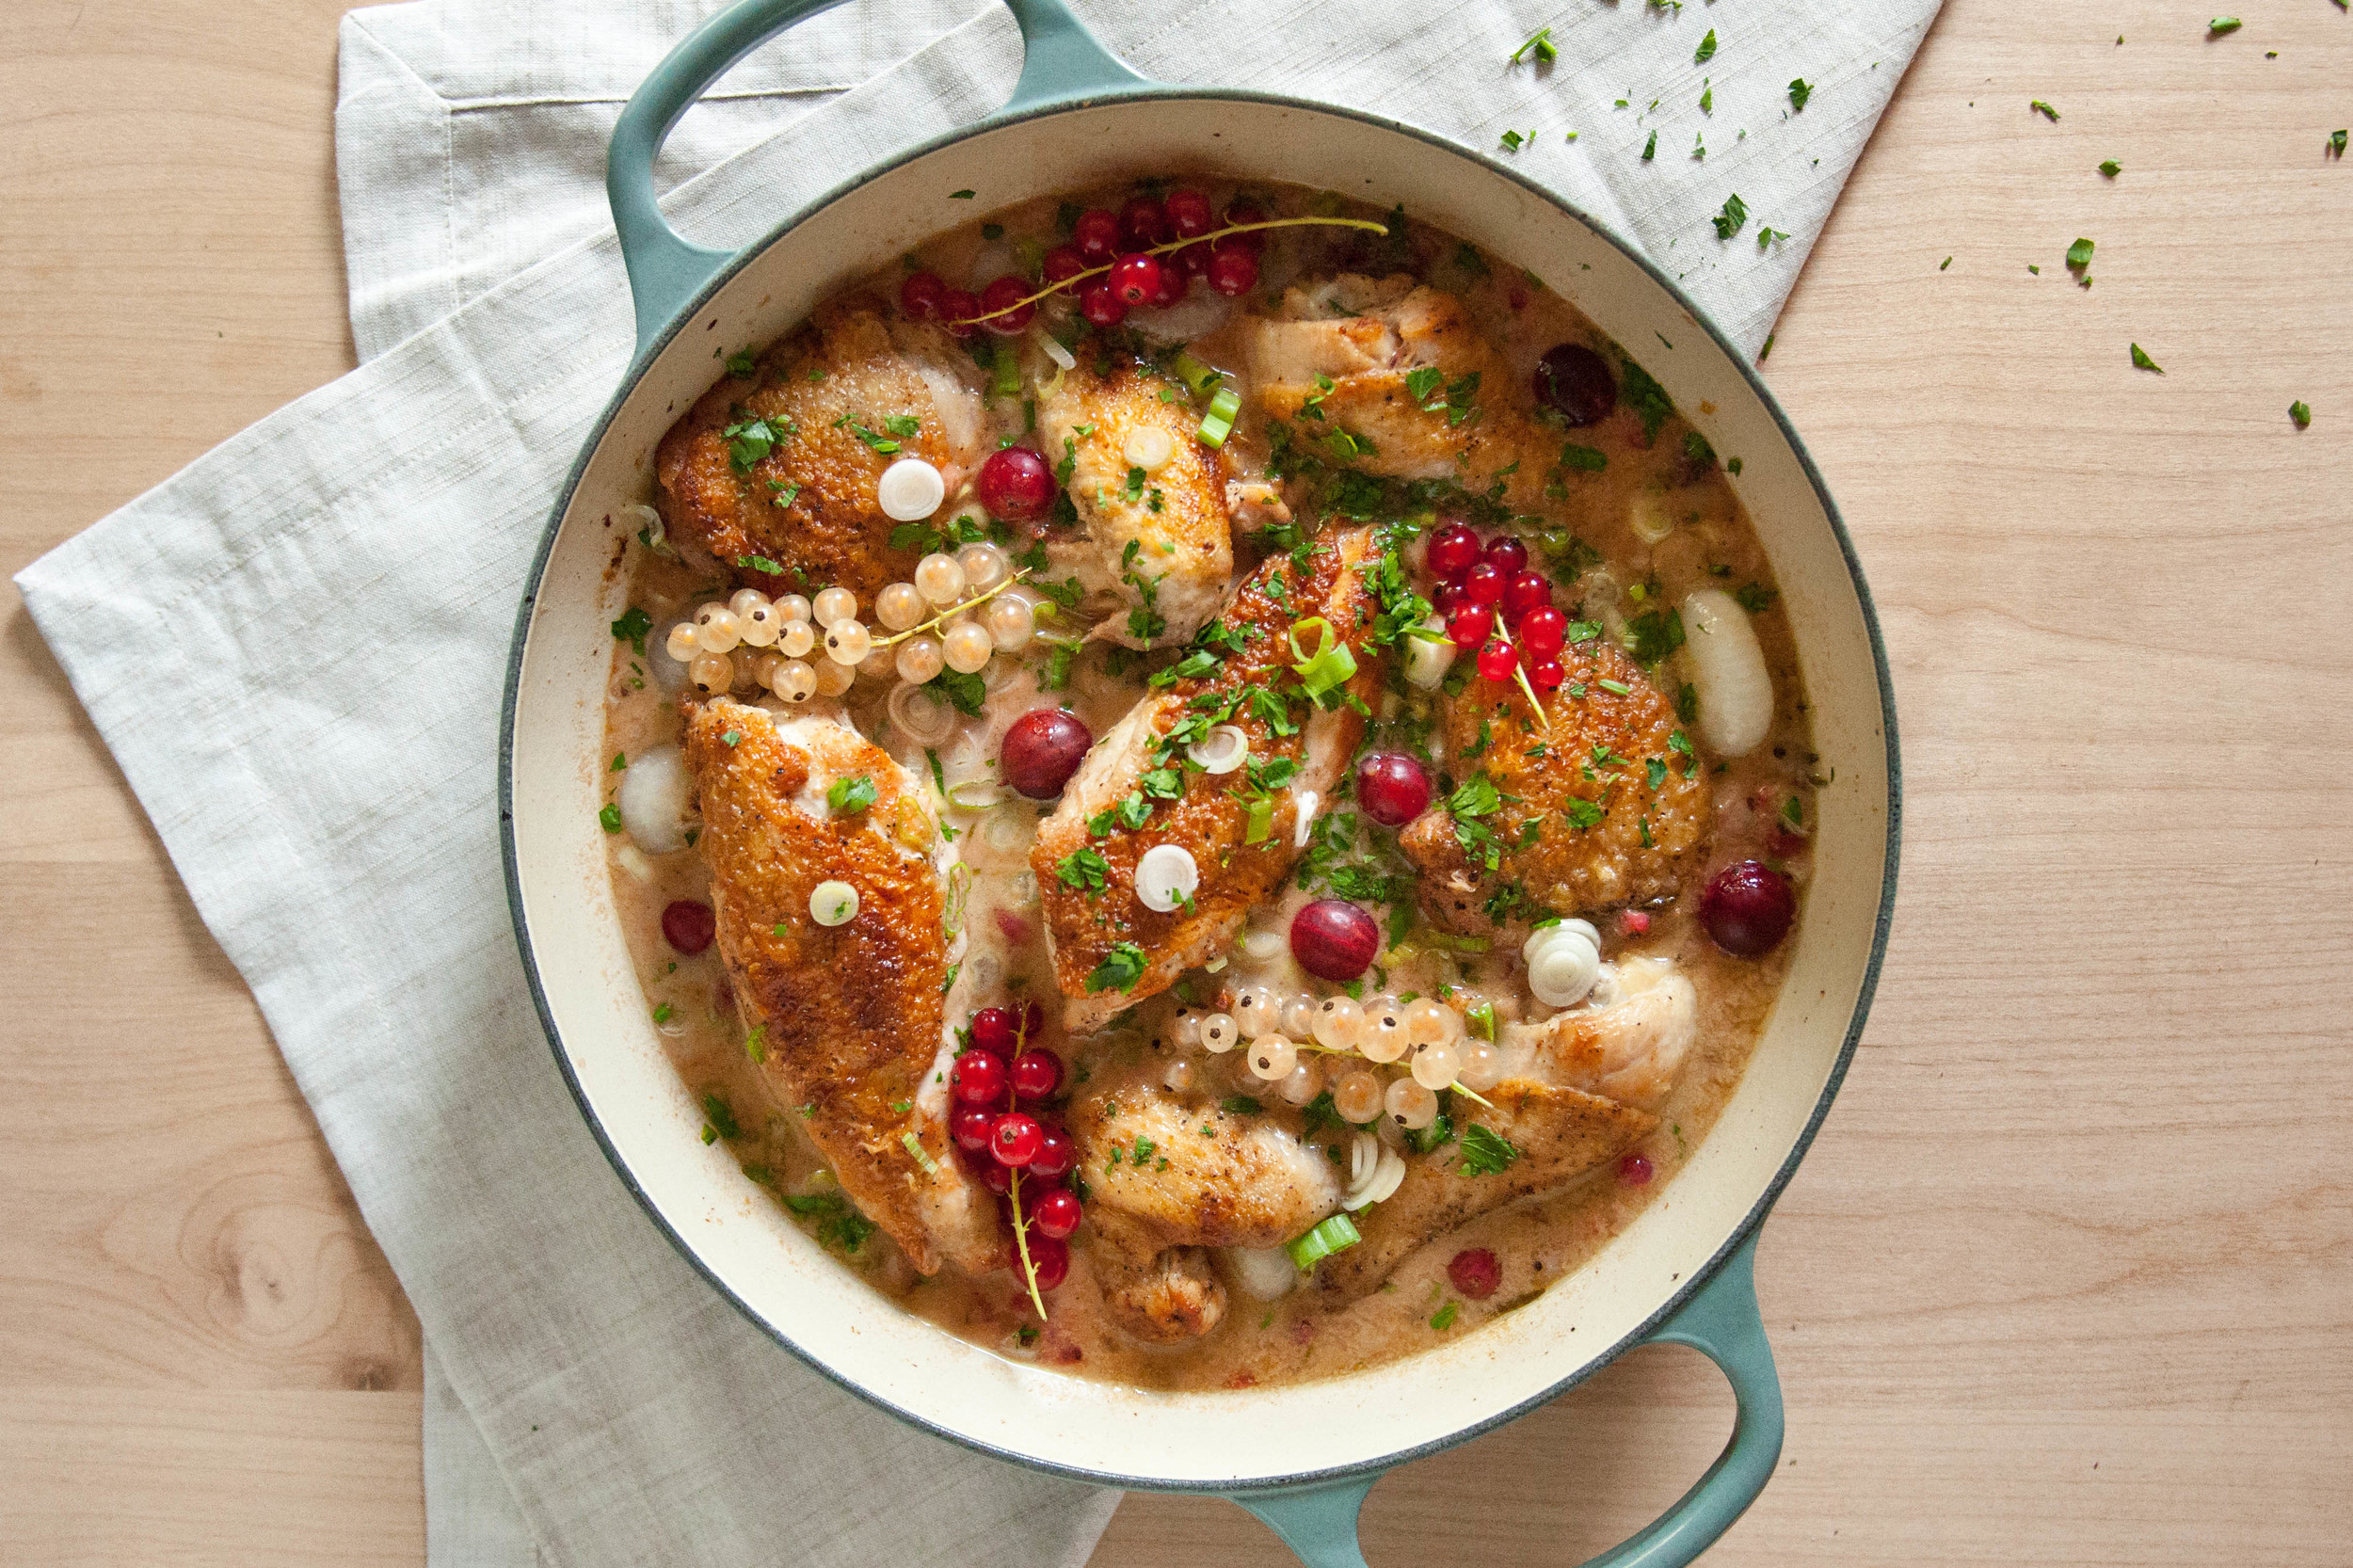 Braised Chicken with Currants & Gooseberries | O&O Eats